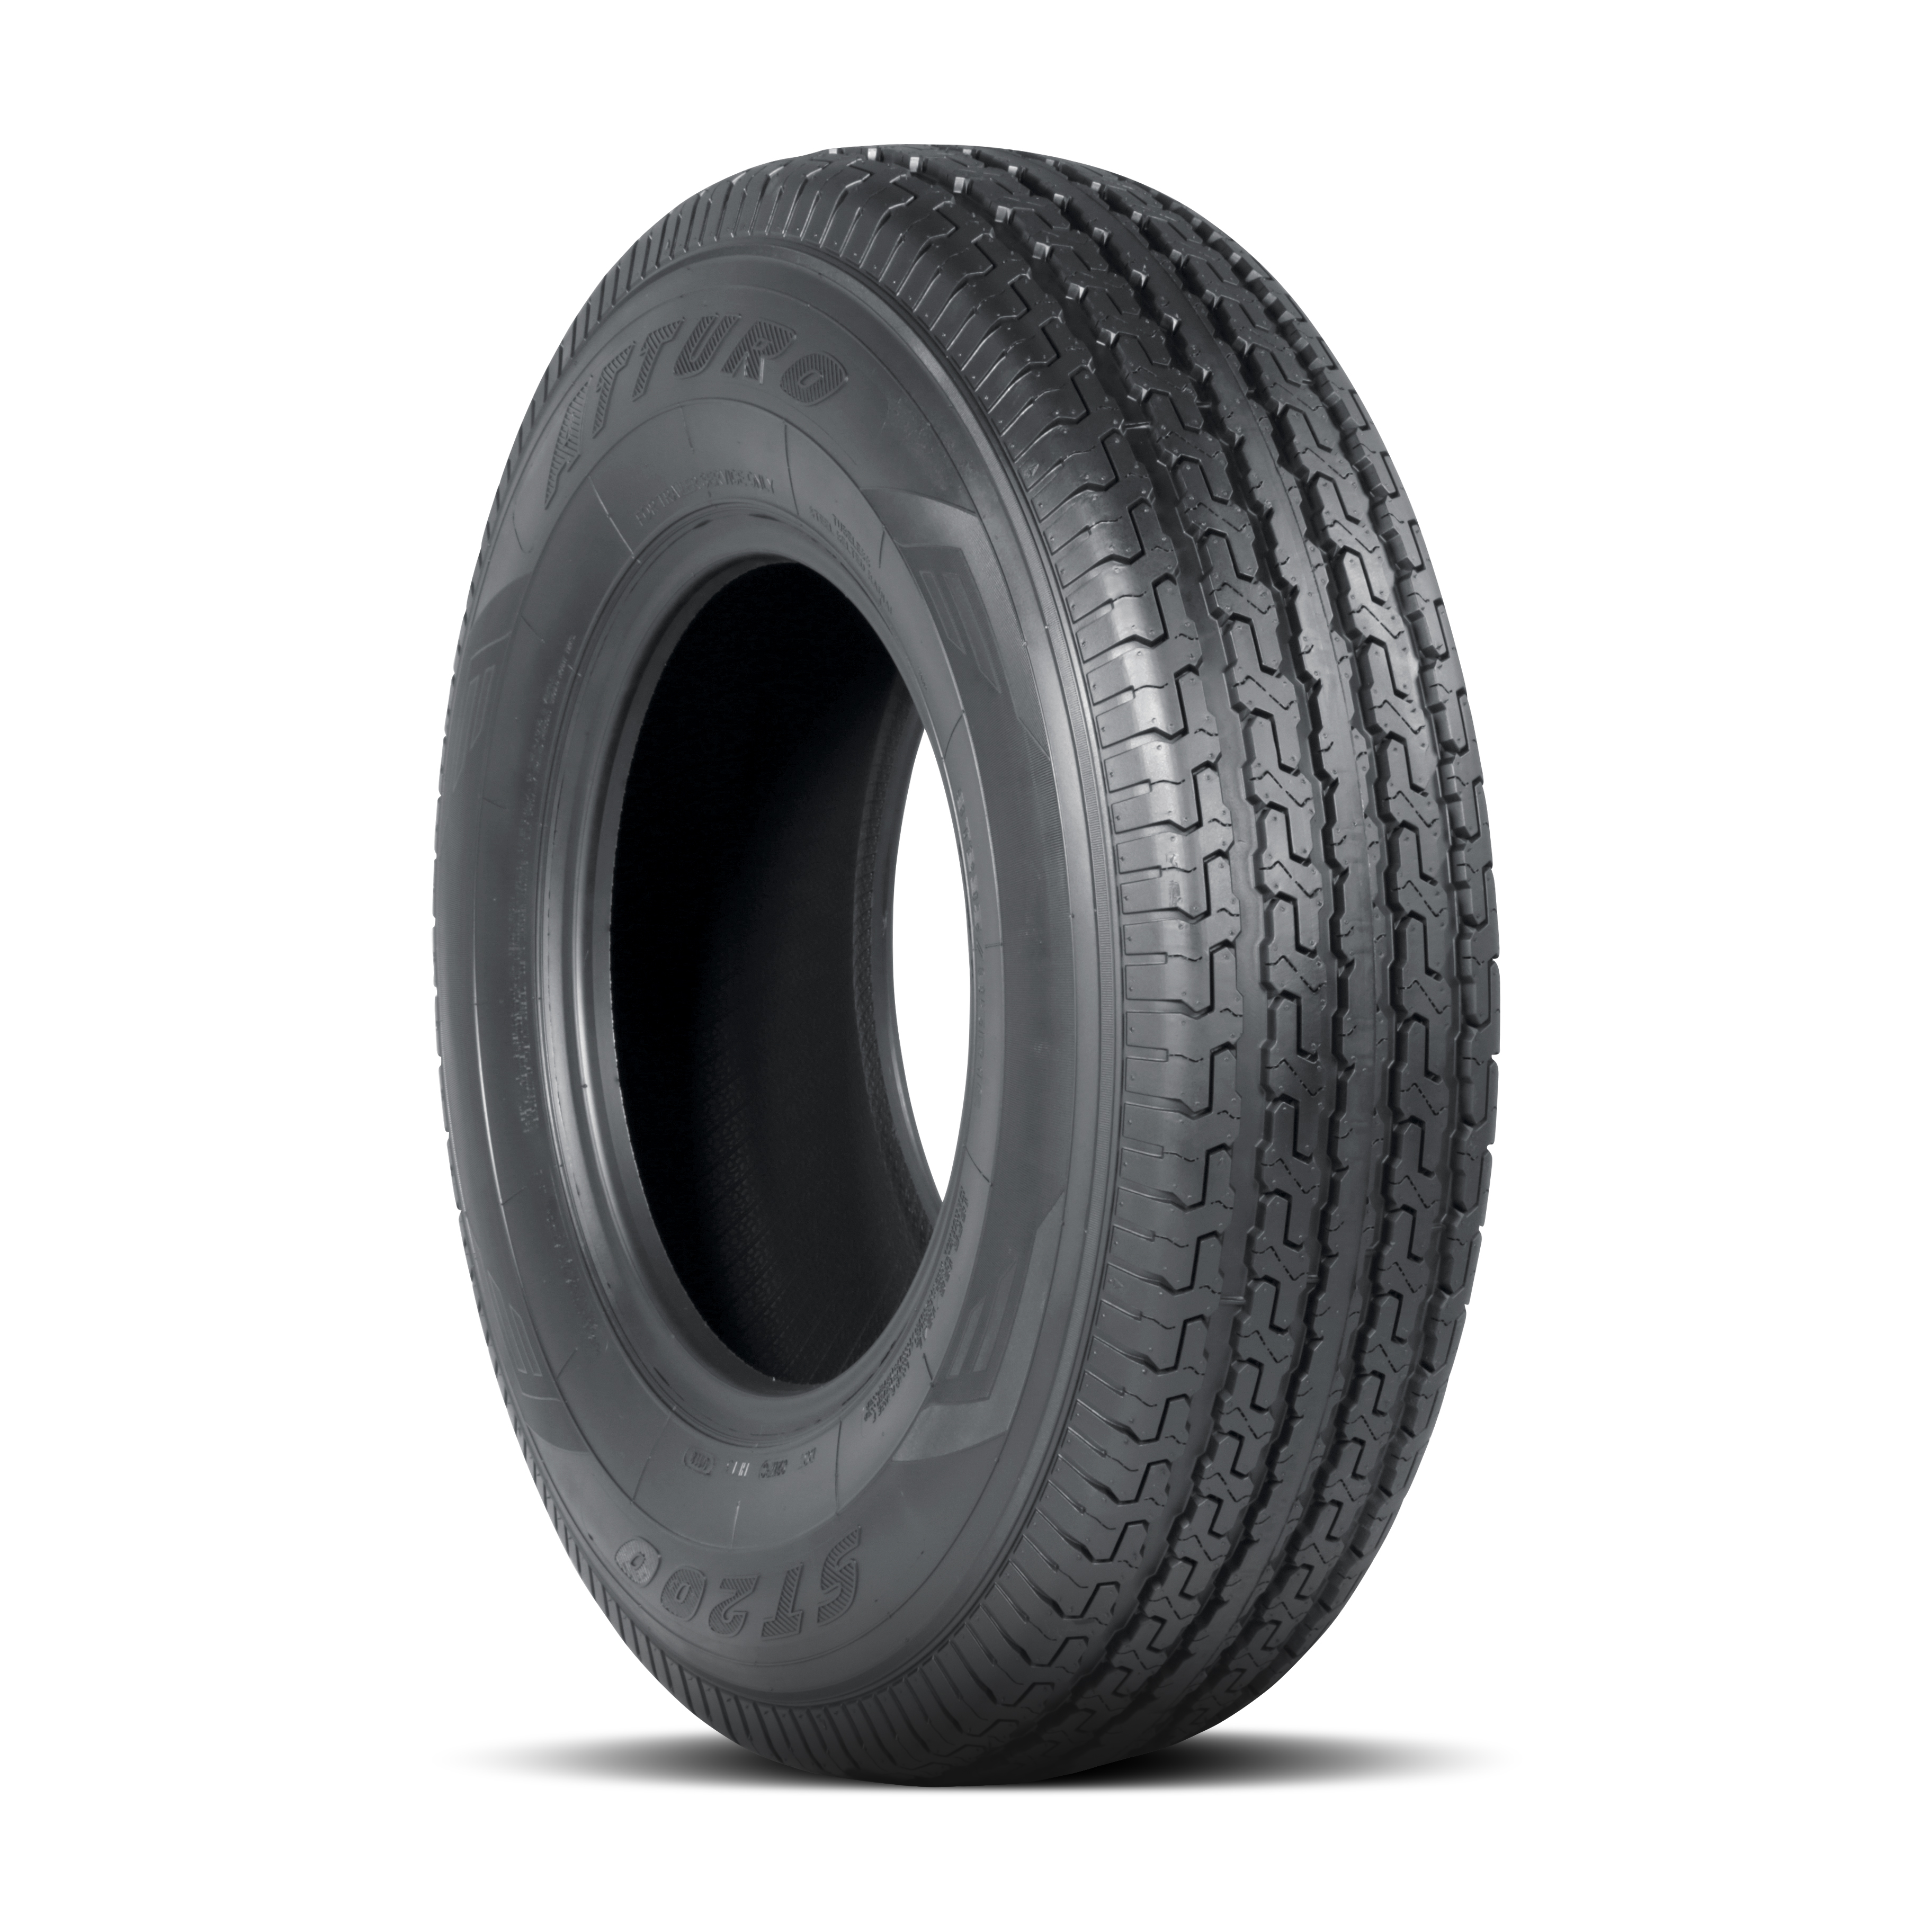 Atturo Expands Lineup to Include ST Trailer Tire